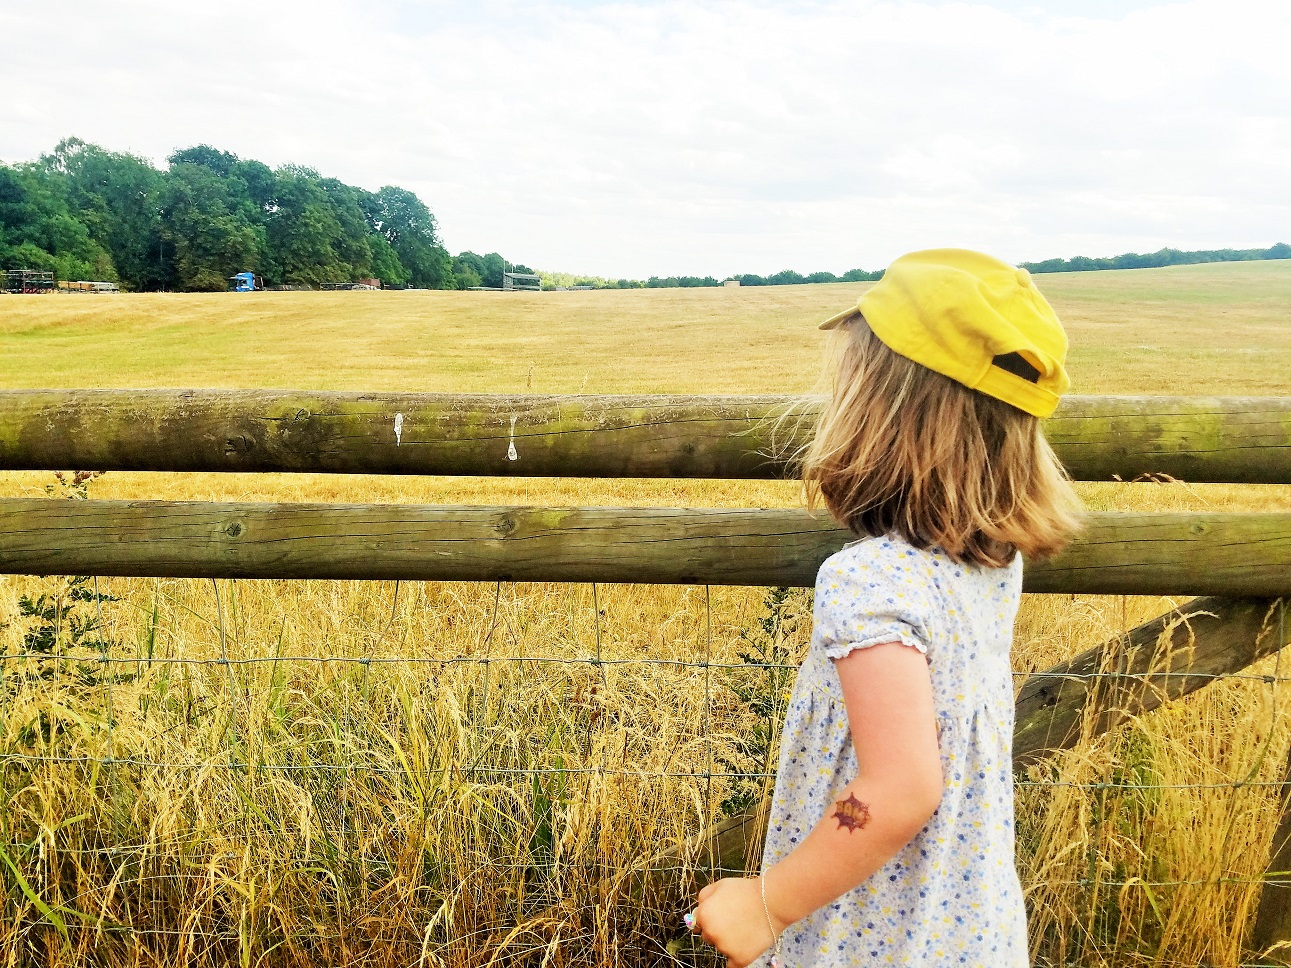 Gentle Parenting and the Art of Listening - child in a yellow hat looking out over a yellow field of wheat - BlogCrush Week 74